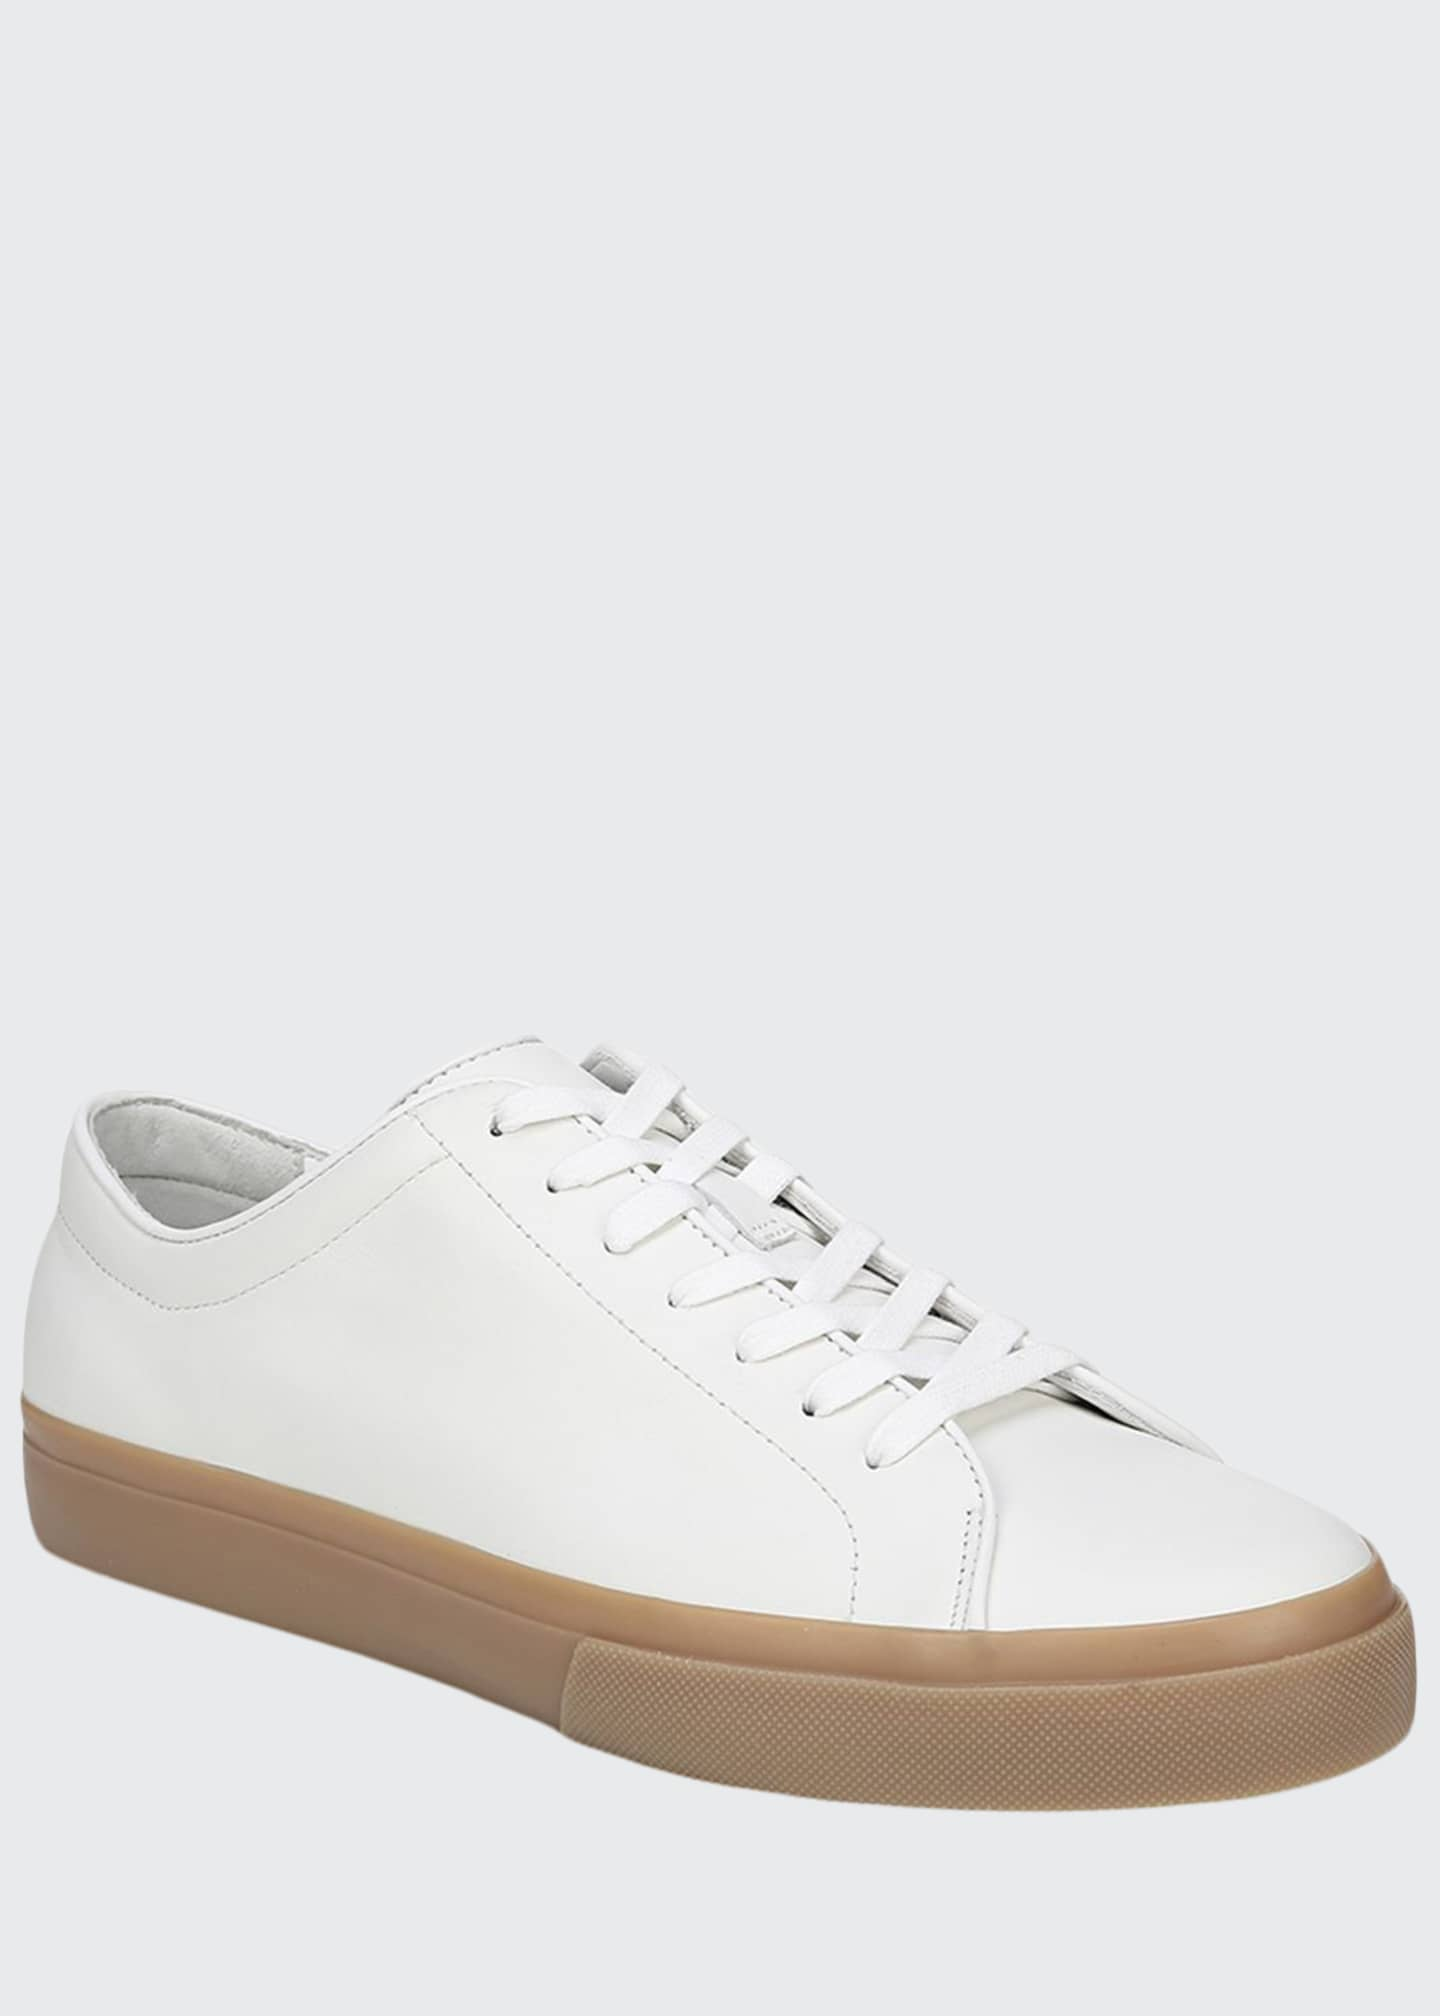 Image 1 of 5: Men's Farrell Calf Leather Low-Top Sneakers